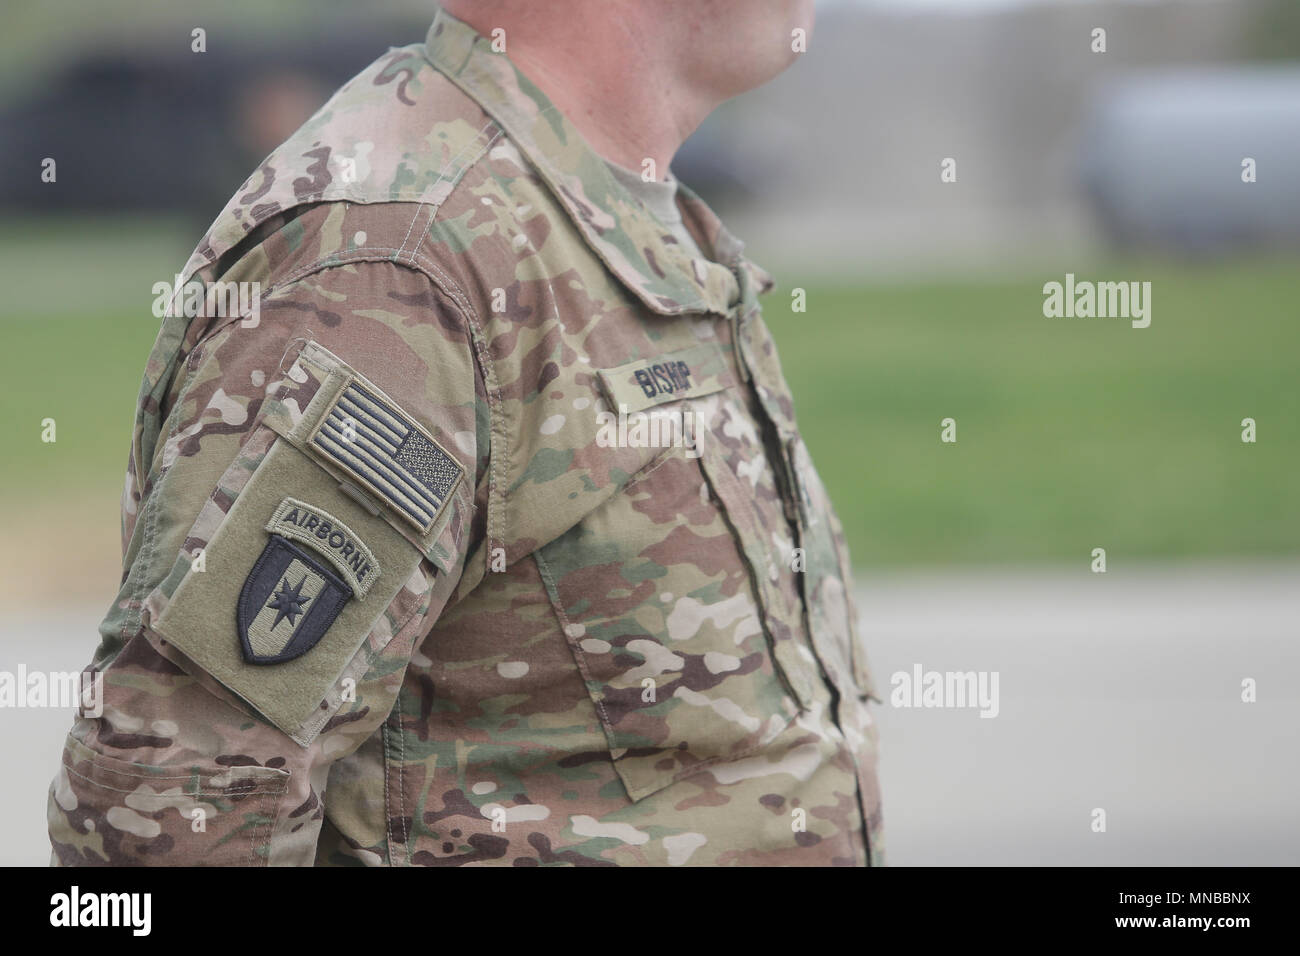 United States Air Force Symbol On A Us Soldier Uniform Stock Photo